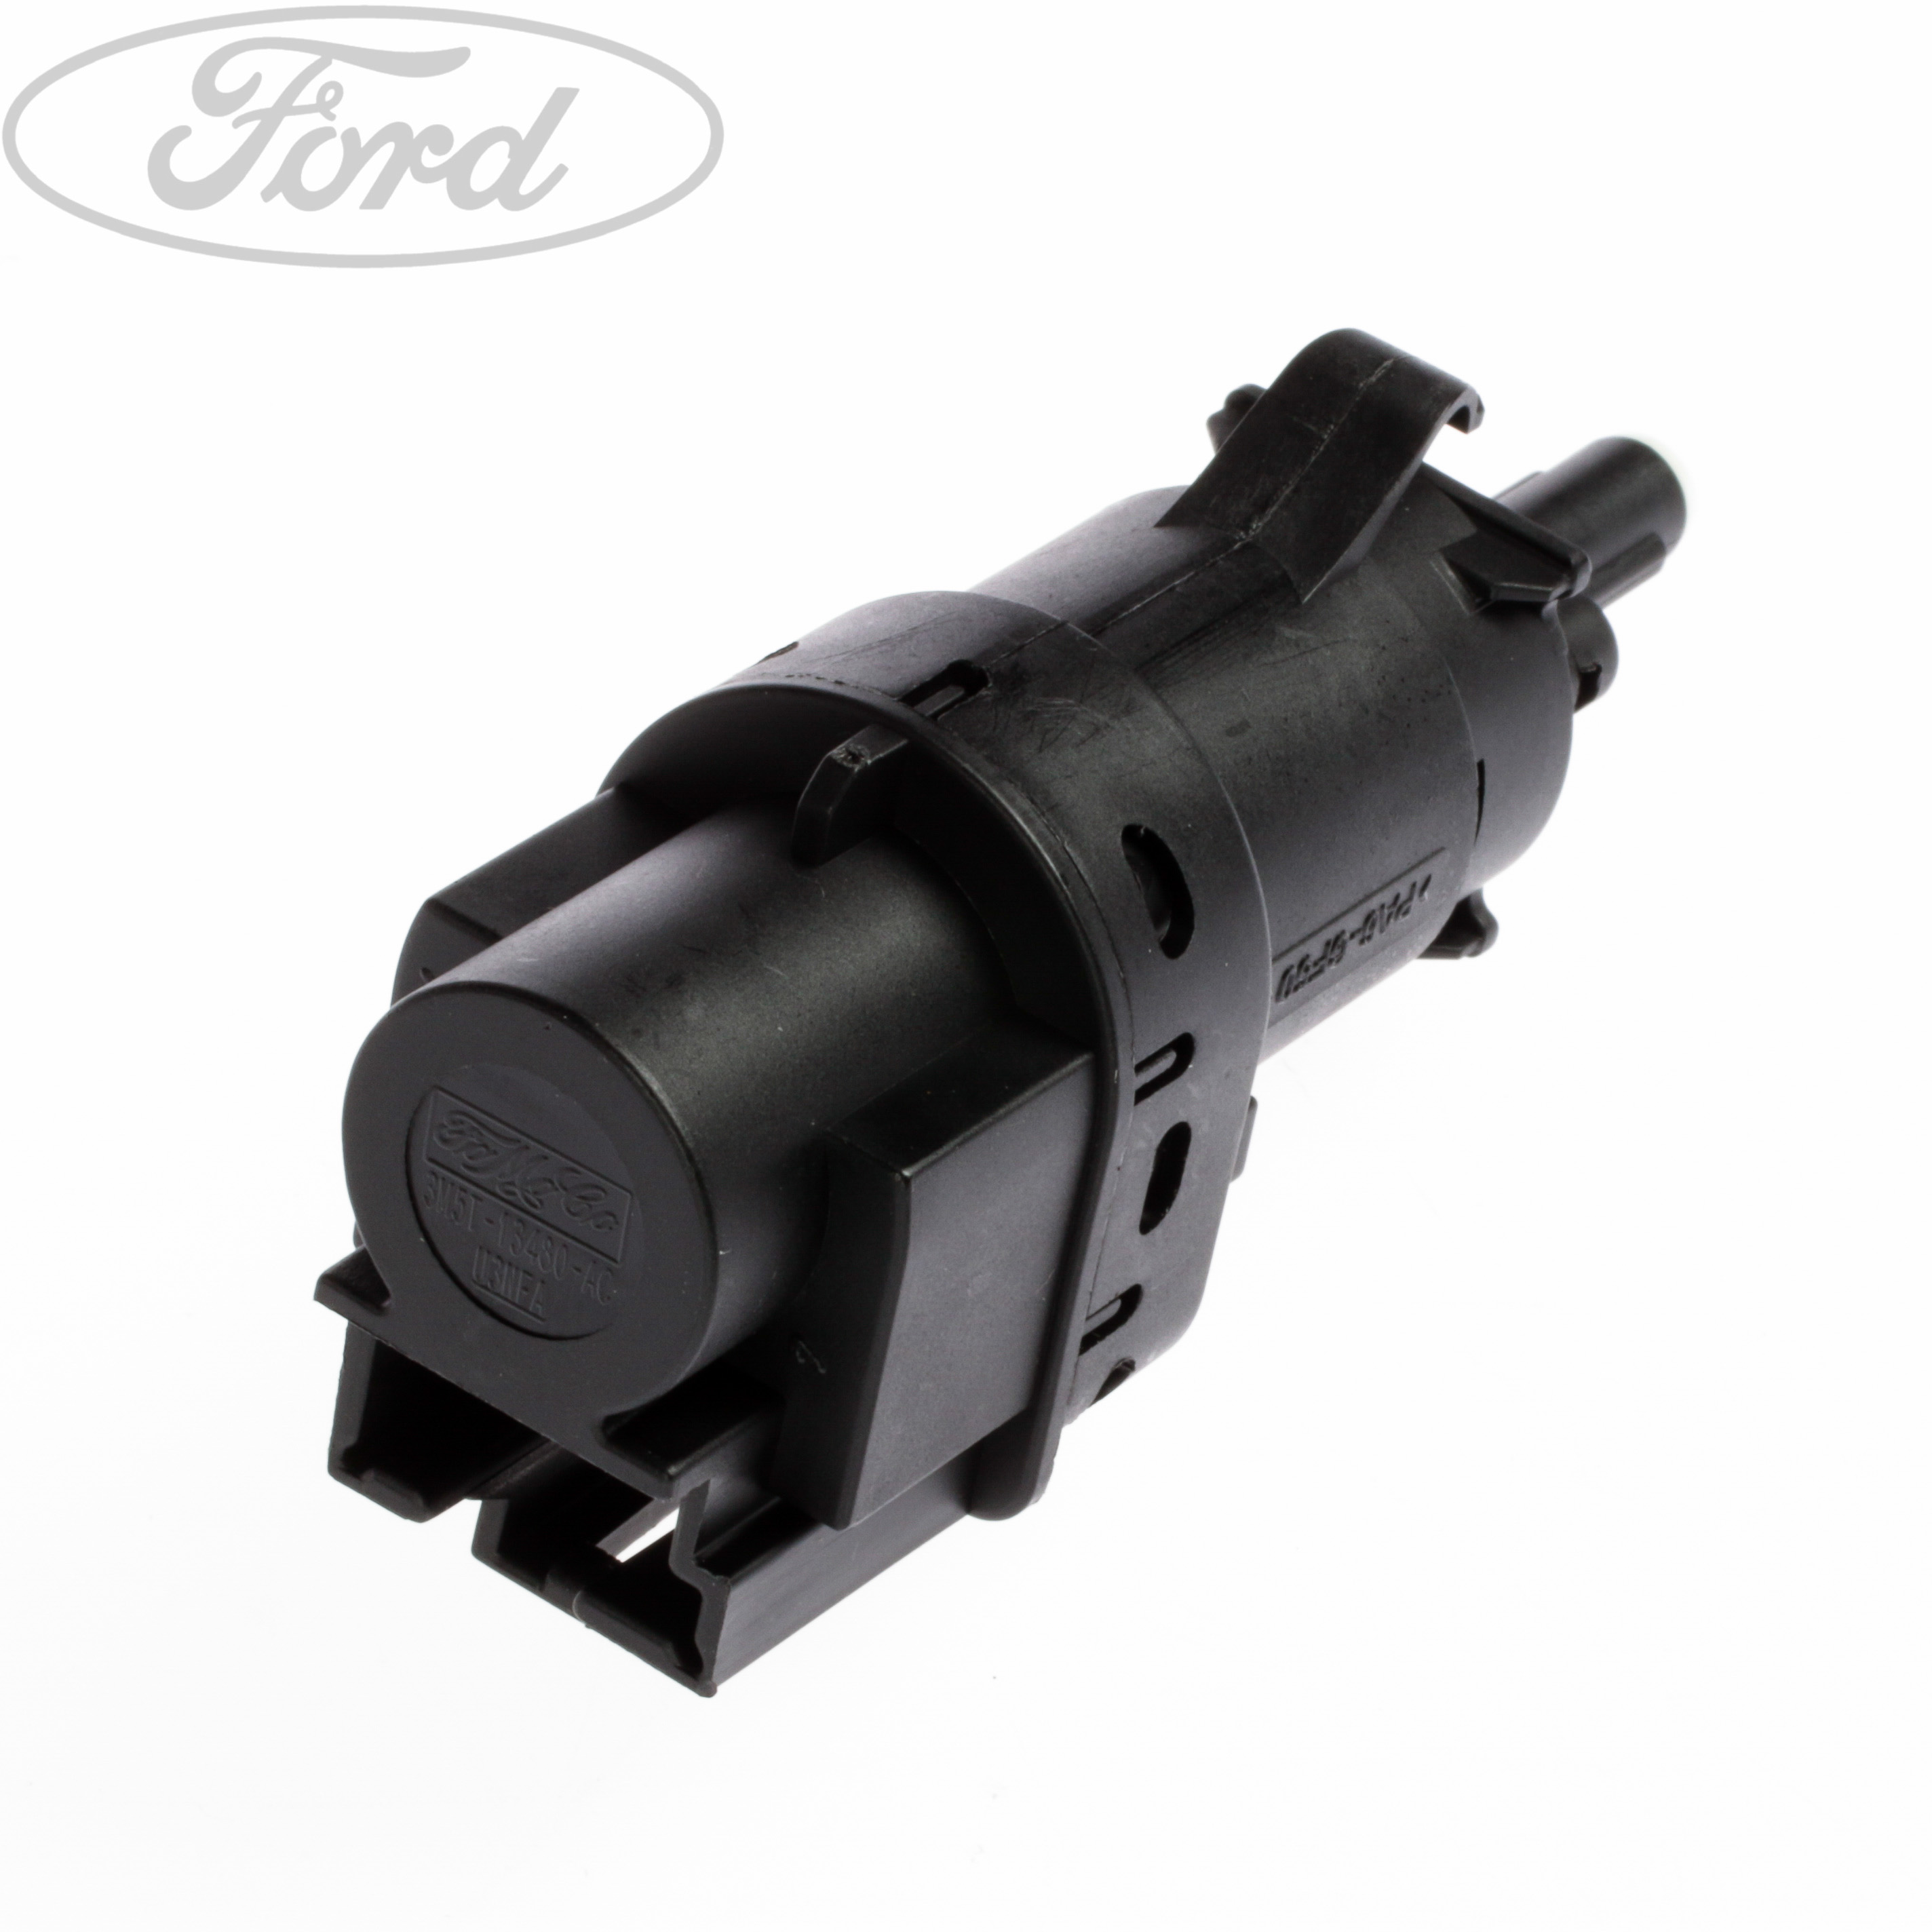 genuine ford mondeo mk4 c max galaxy s max brake light switch 4832217 ebay. Black Bedroom Furniture Sets. Home Design Ideas